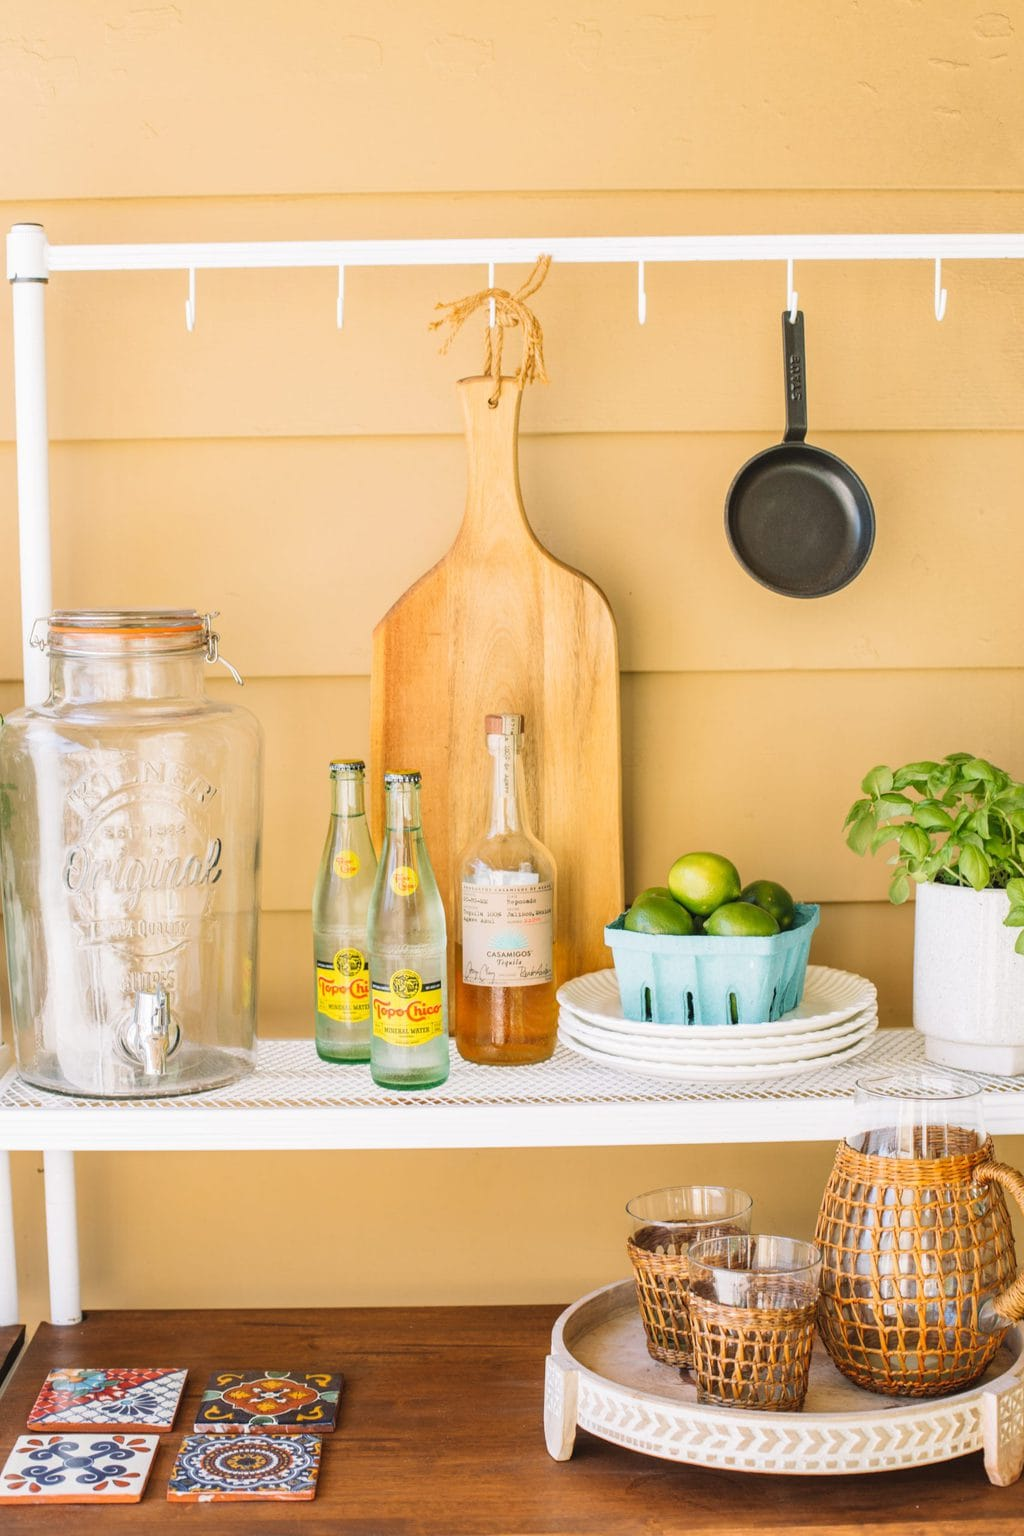 An outdoor patio buffet setup with a drink dispenser, sparkling water, tequila, limes and outdoor plates.